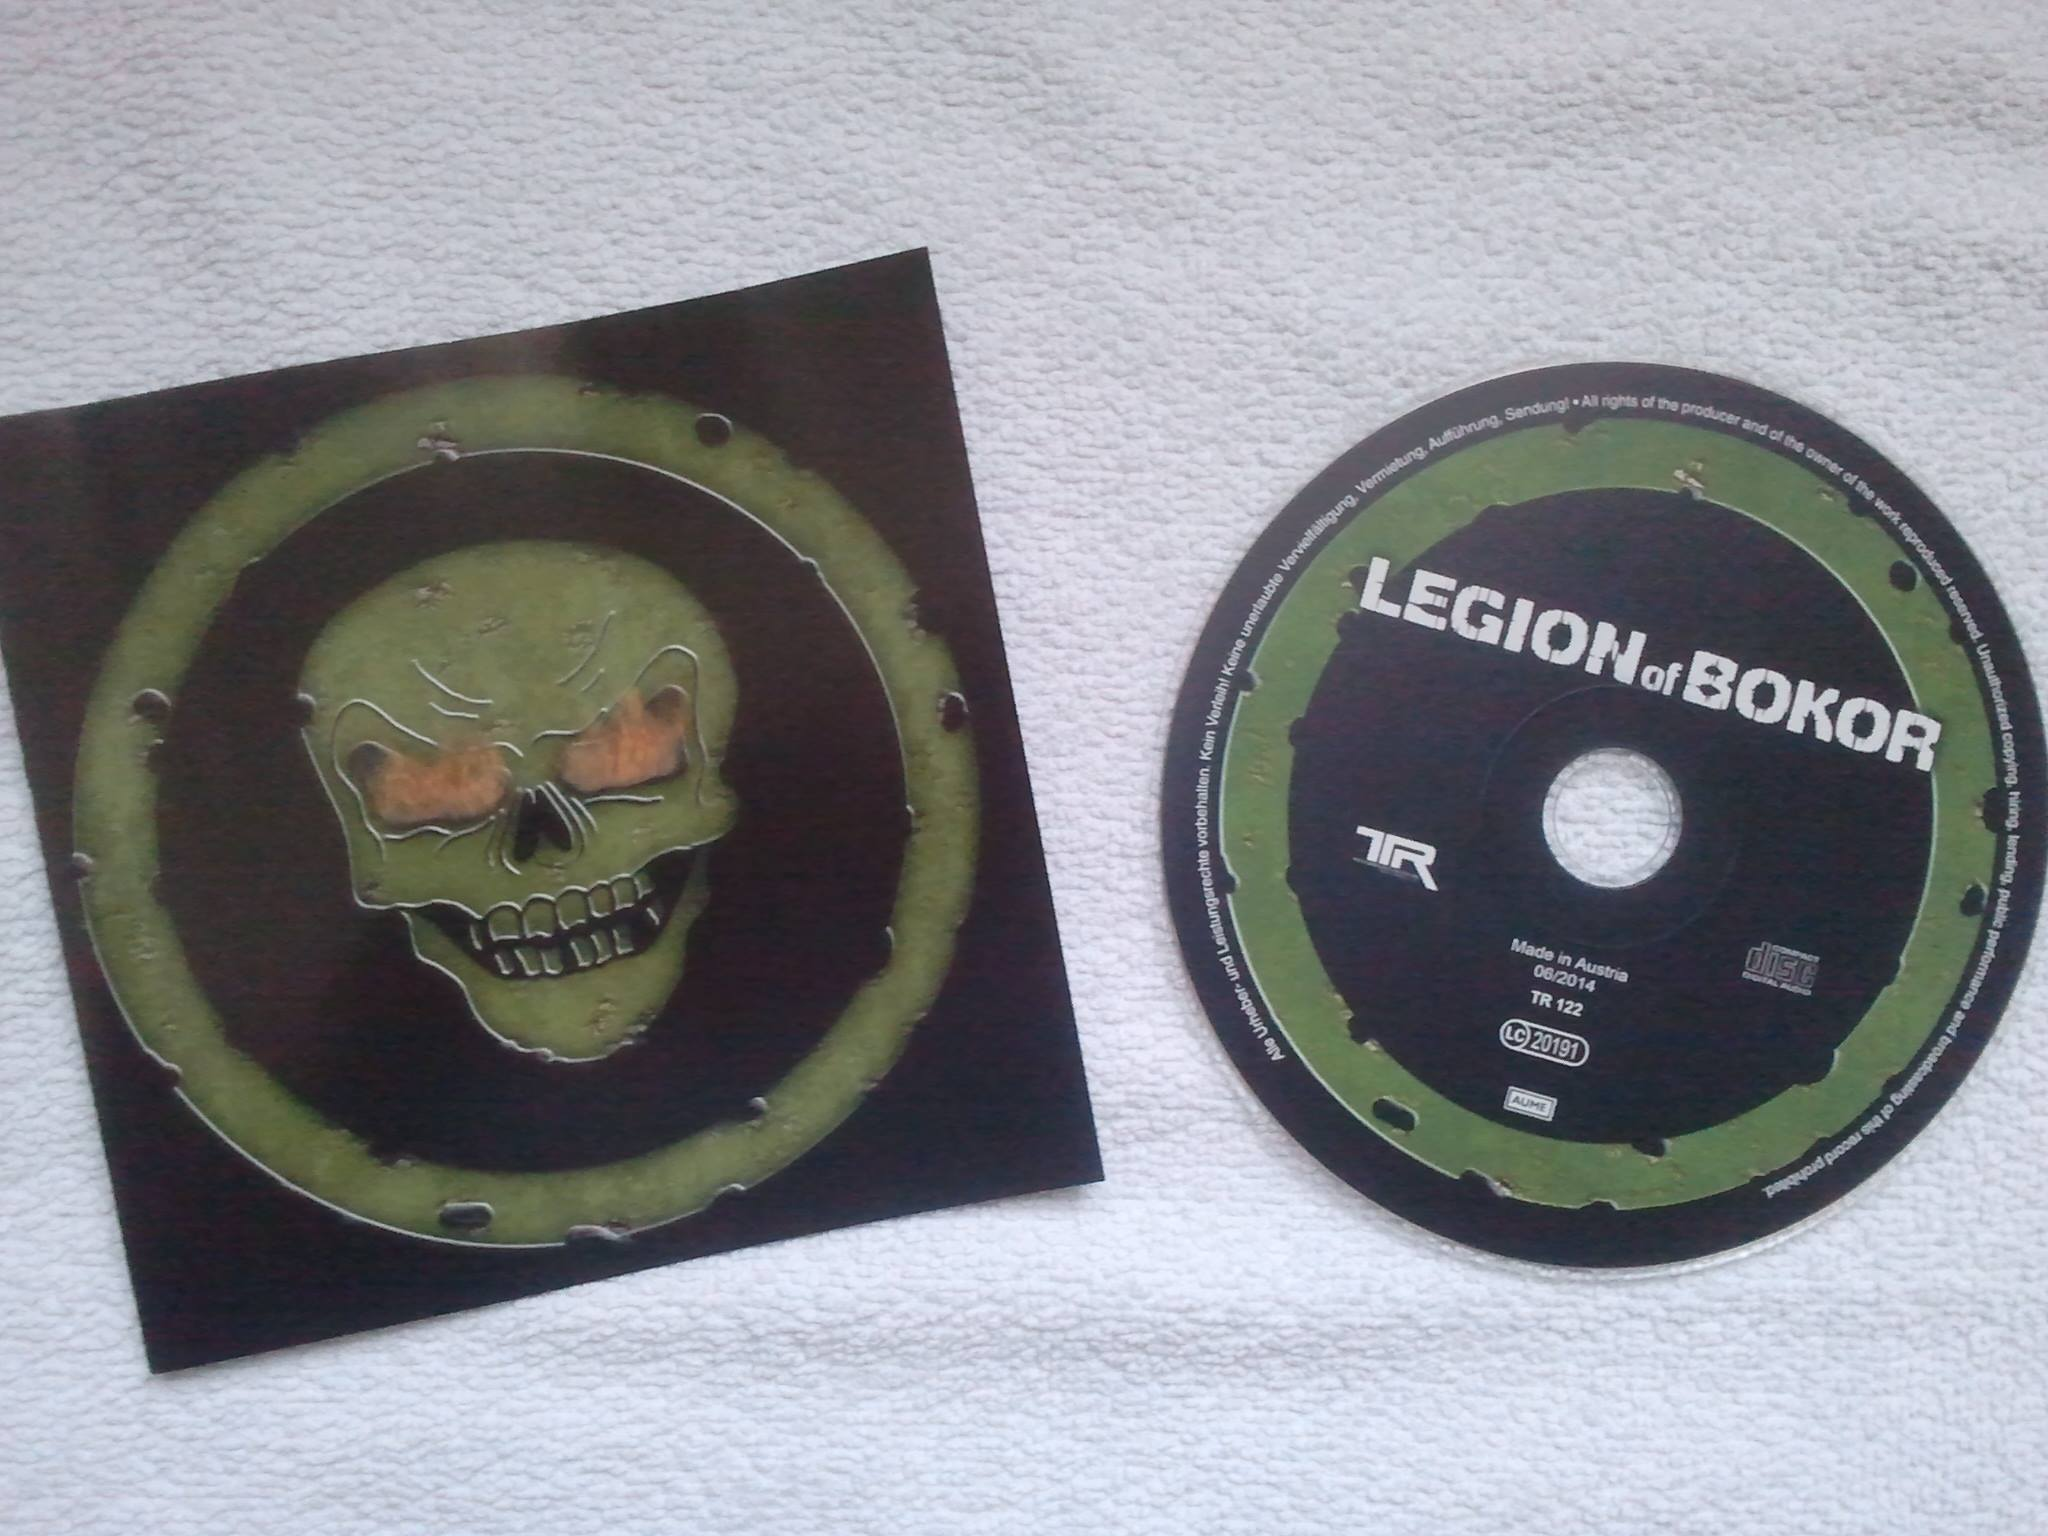 LEGION OF BOKOR (2014) - CD